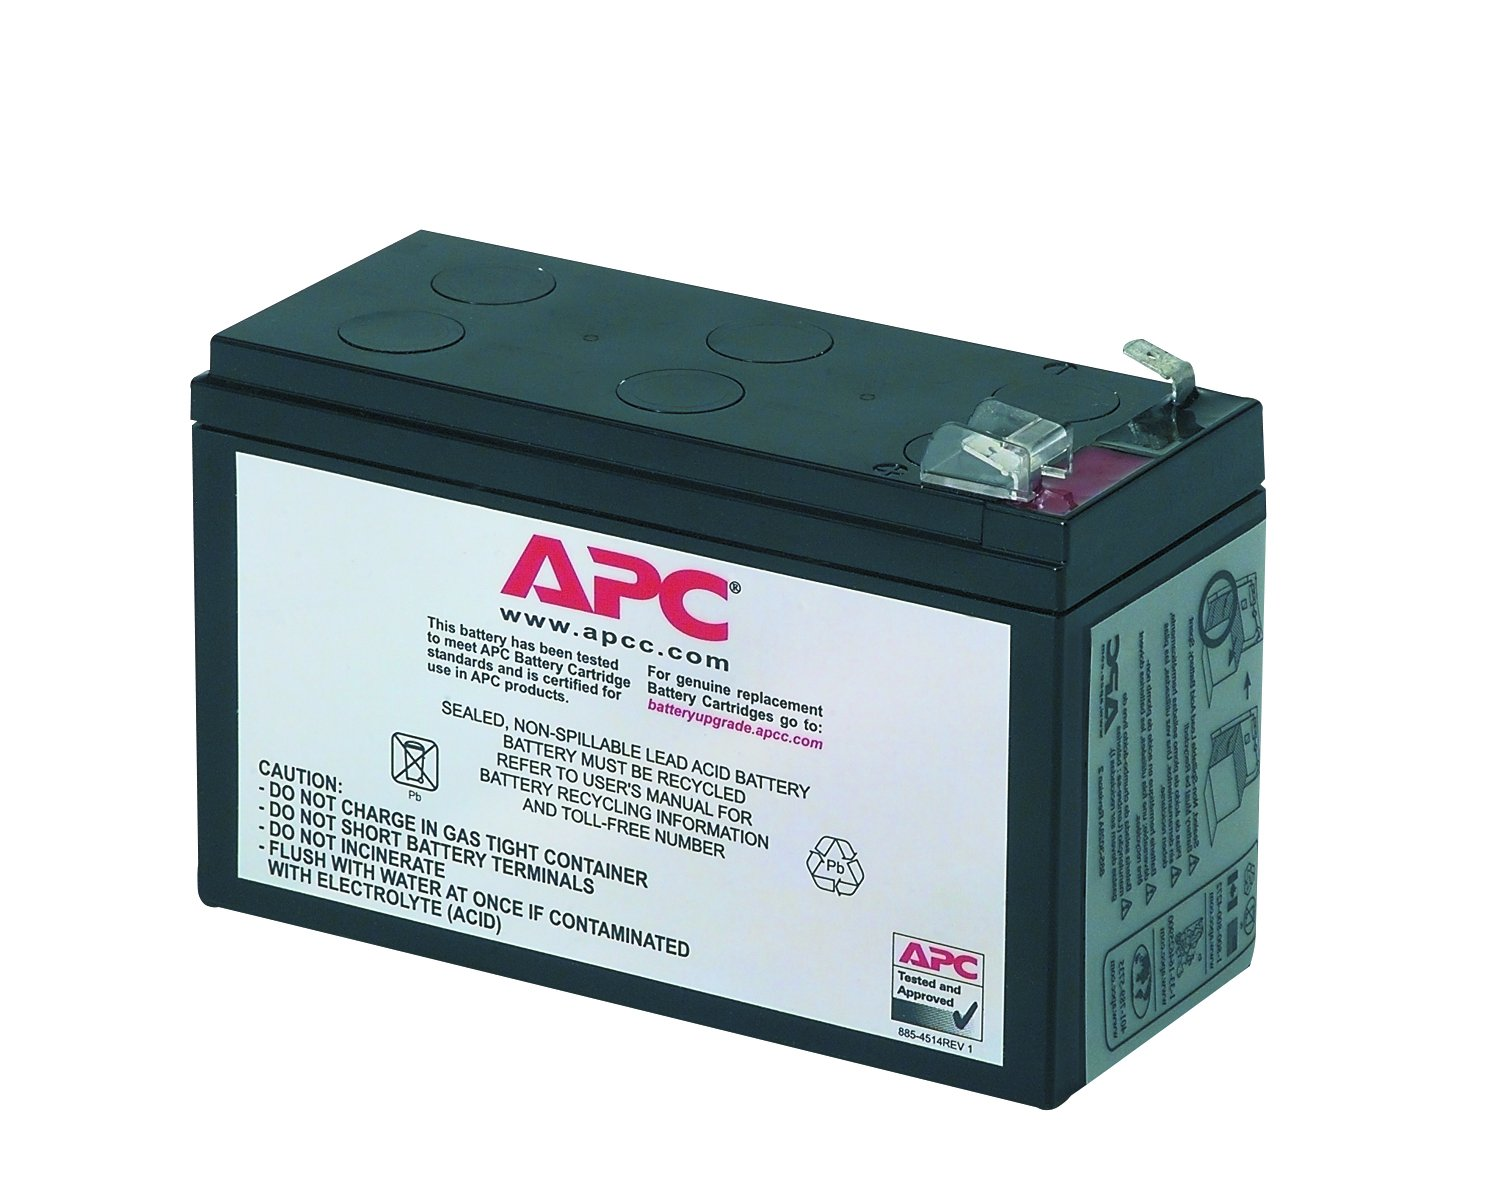 amazon com apc ups replacement battery cartridge for apc ups model rh amazon com Word Manual Guide Word Manual Guide